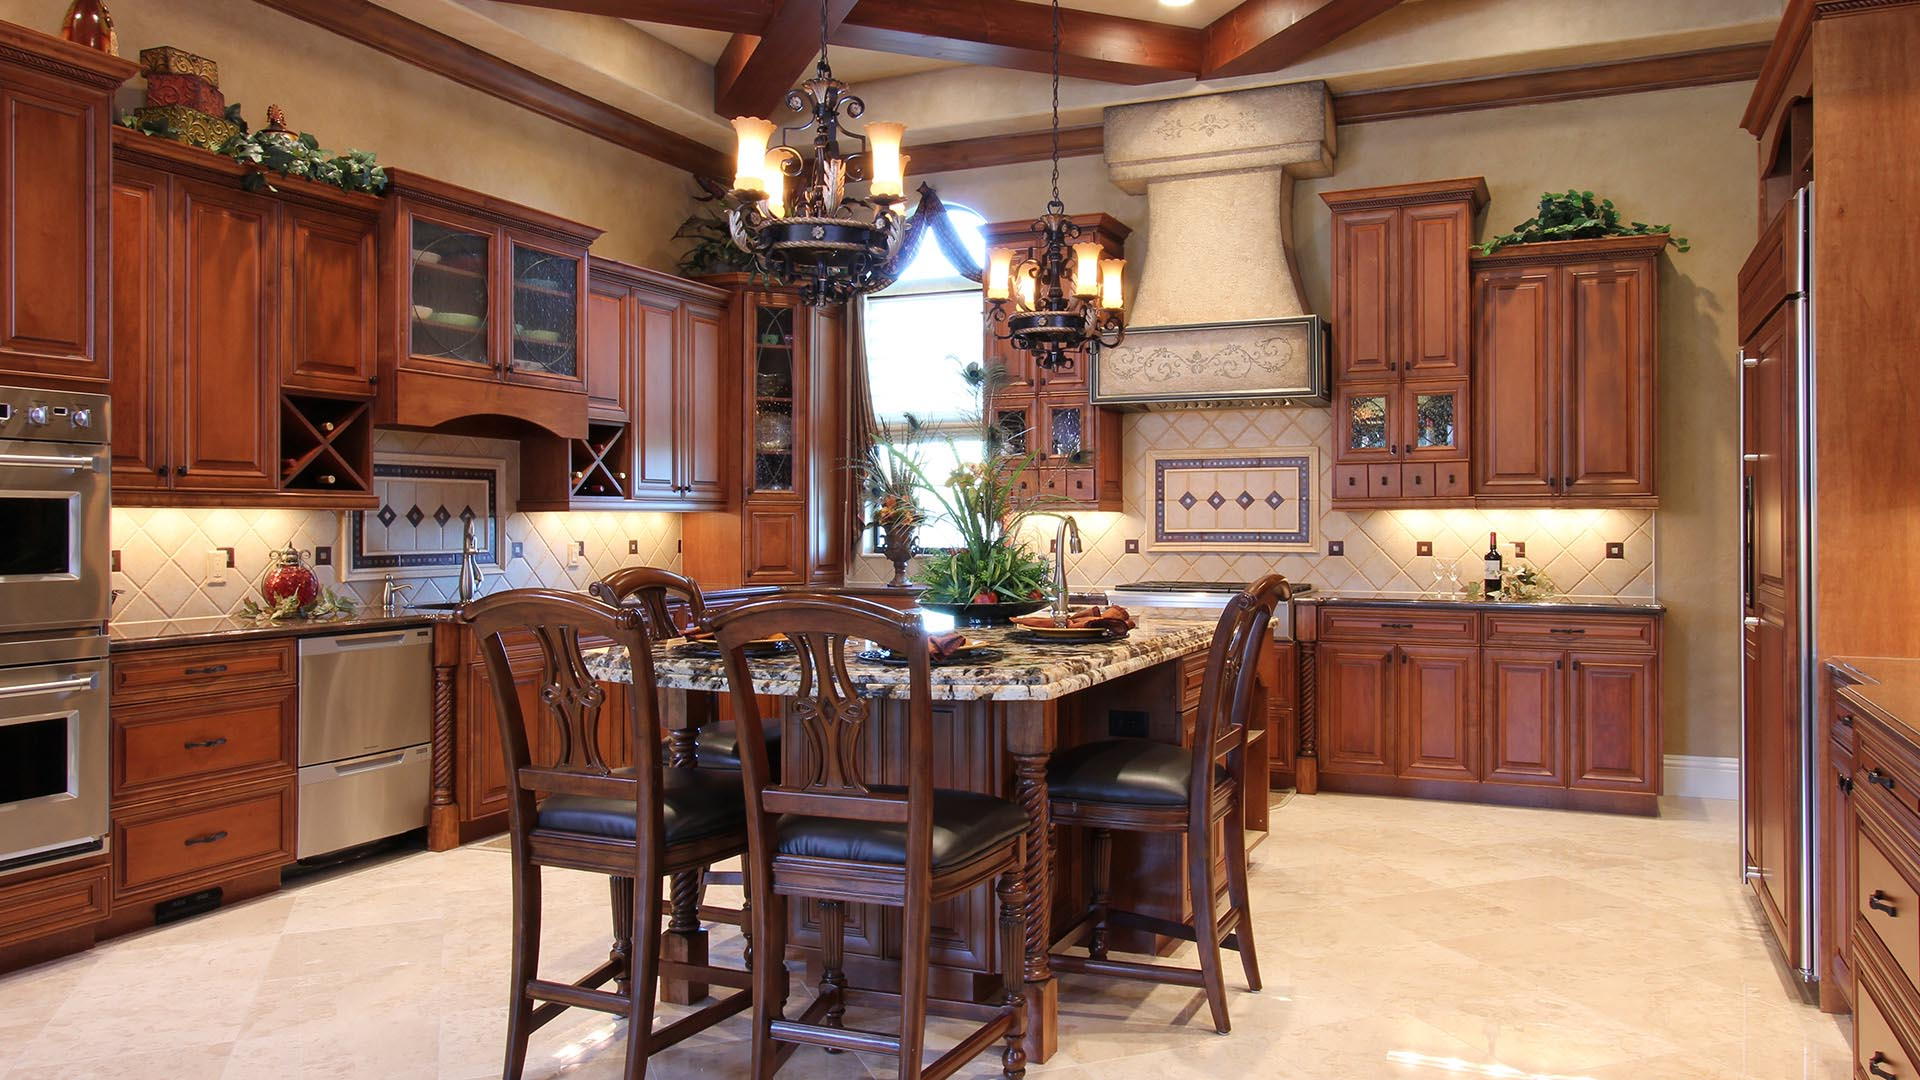 About Castles and Cottages Interiors Sarasota Bradenton and